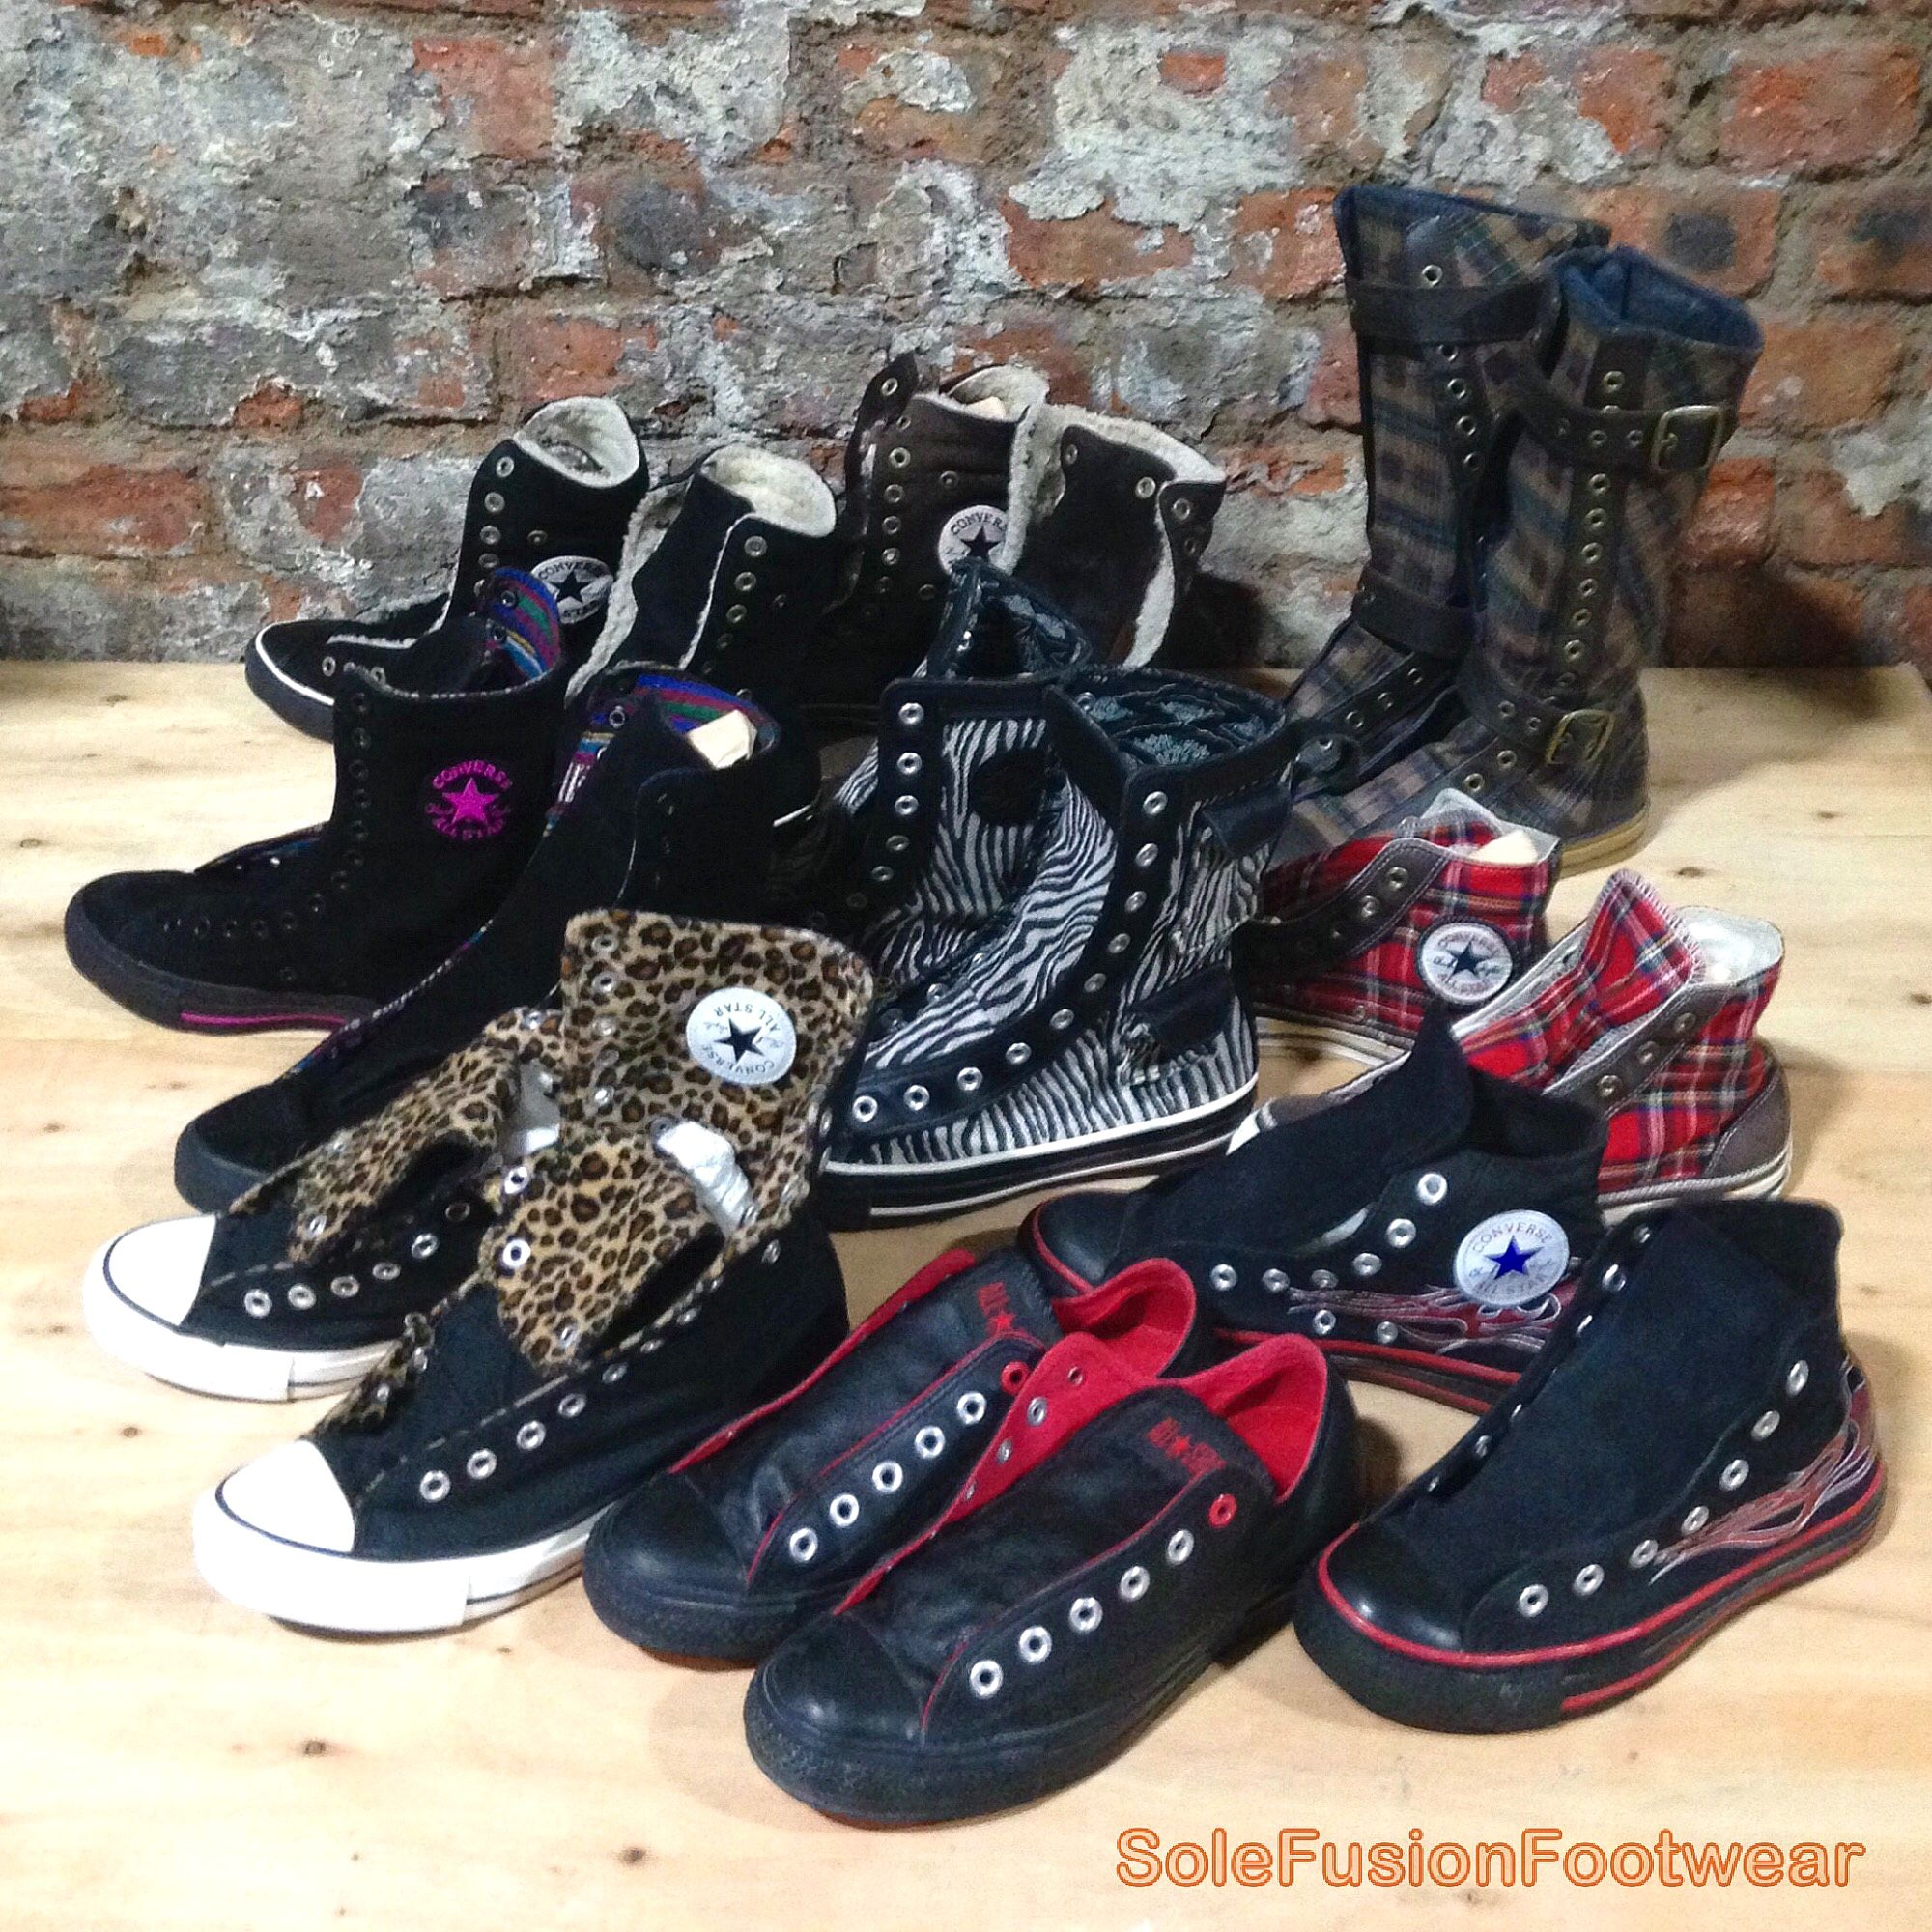 8d3c08e89749 Converse All Star X Hi Rare Chuck Taylor High Low Top Vintage Shoes and  Boots